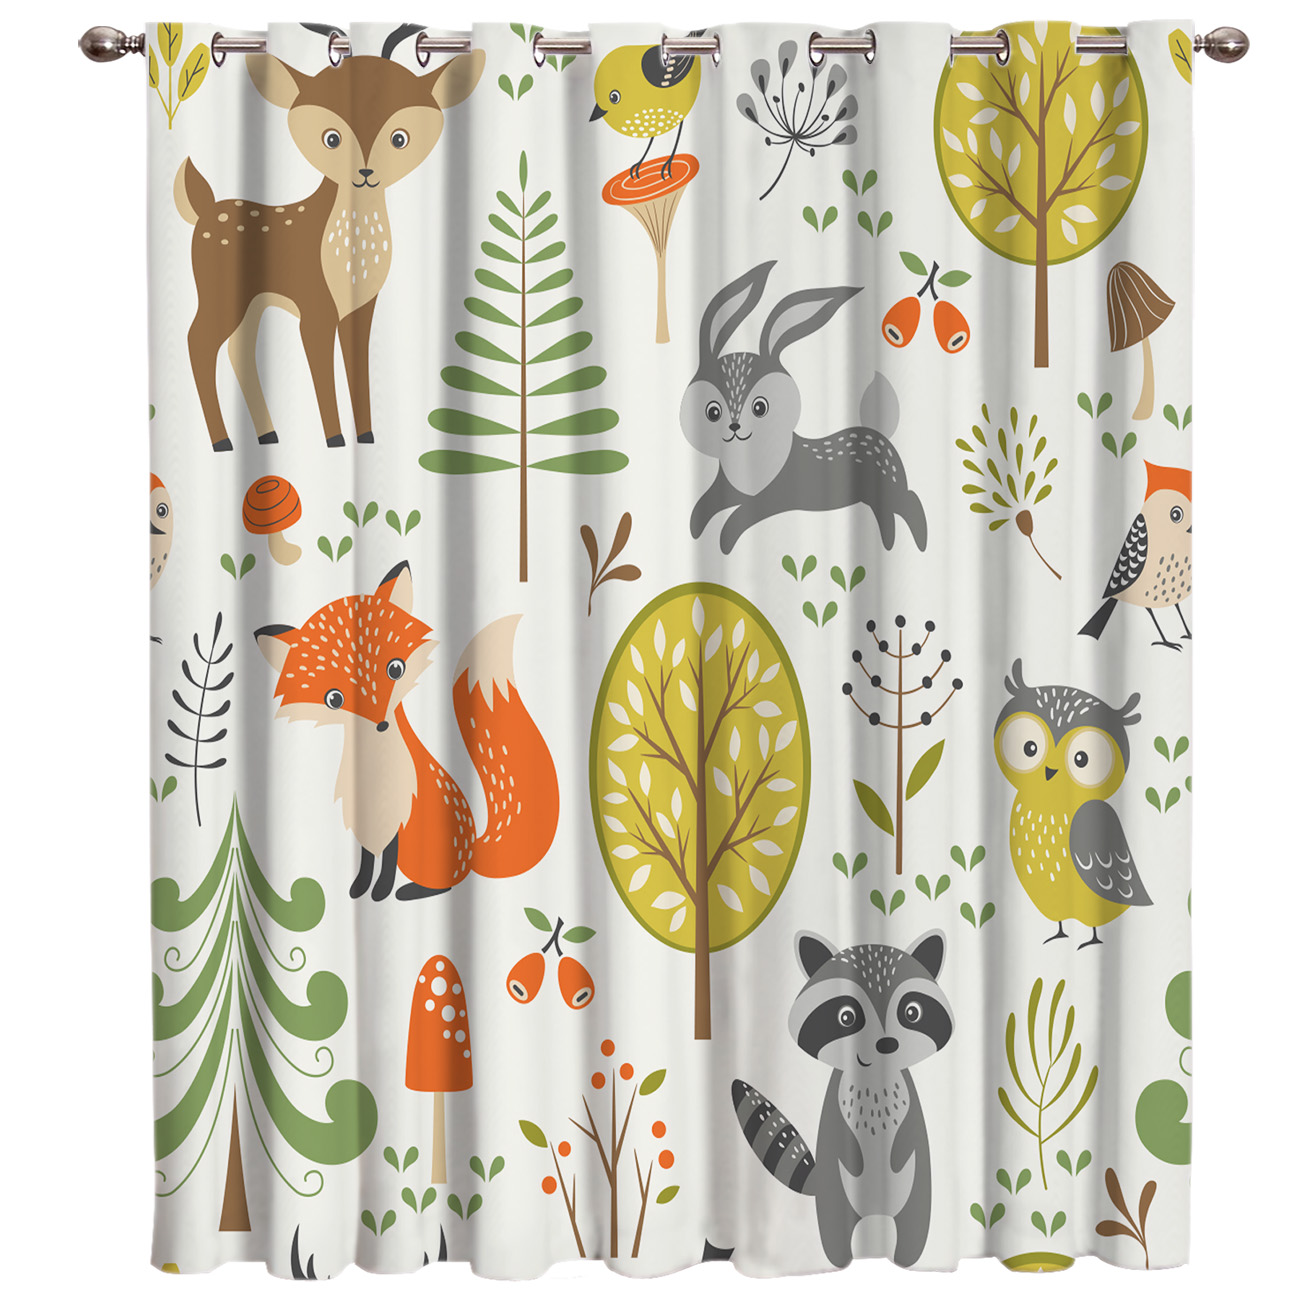 Cartoon Animals World Window Treatments Curtains Valance Window Blinds Bedroom Curtains Outdoor Bedroom Indoor Decor Kids